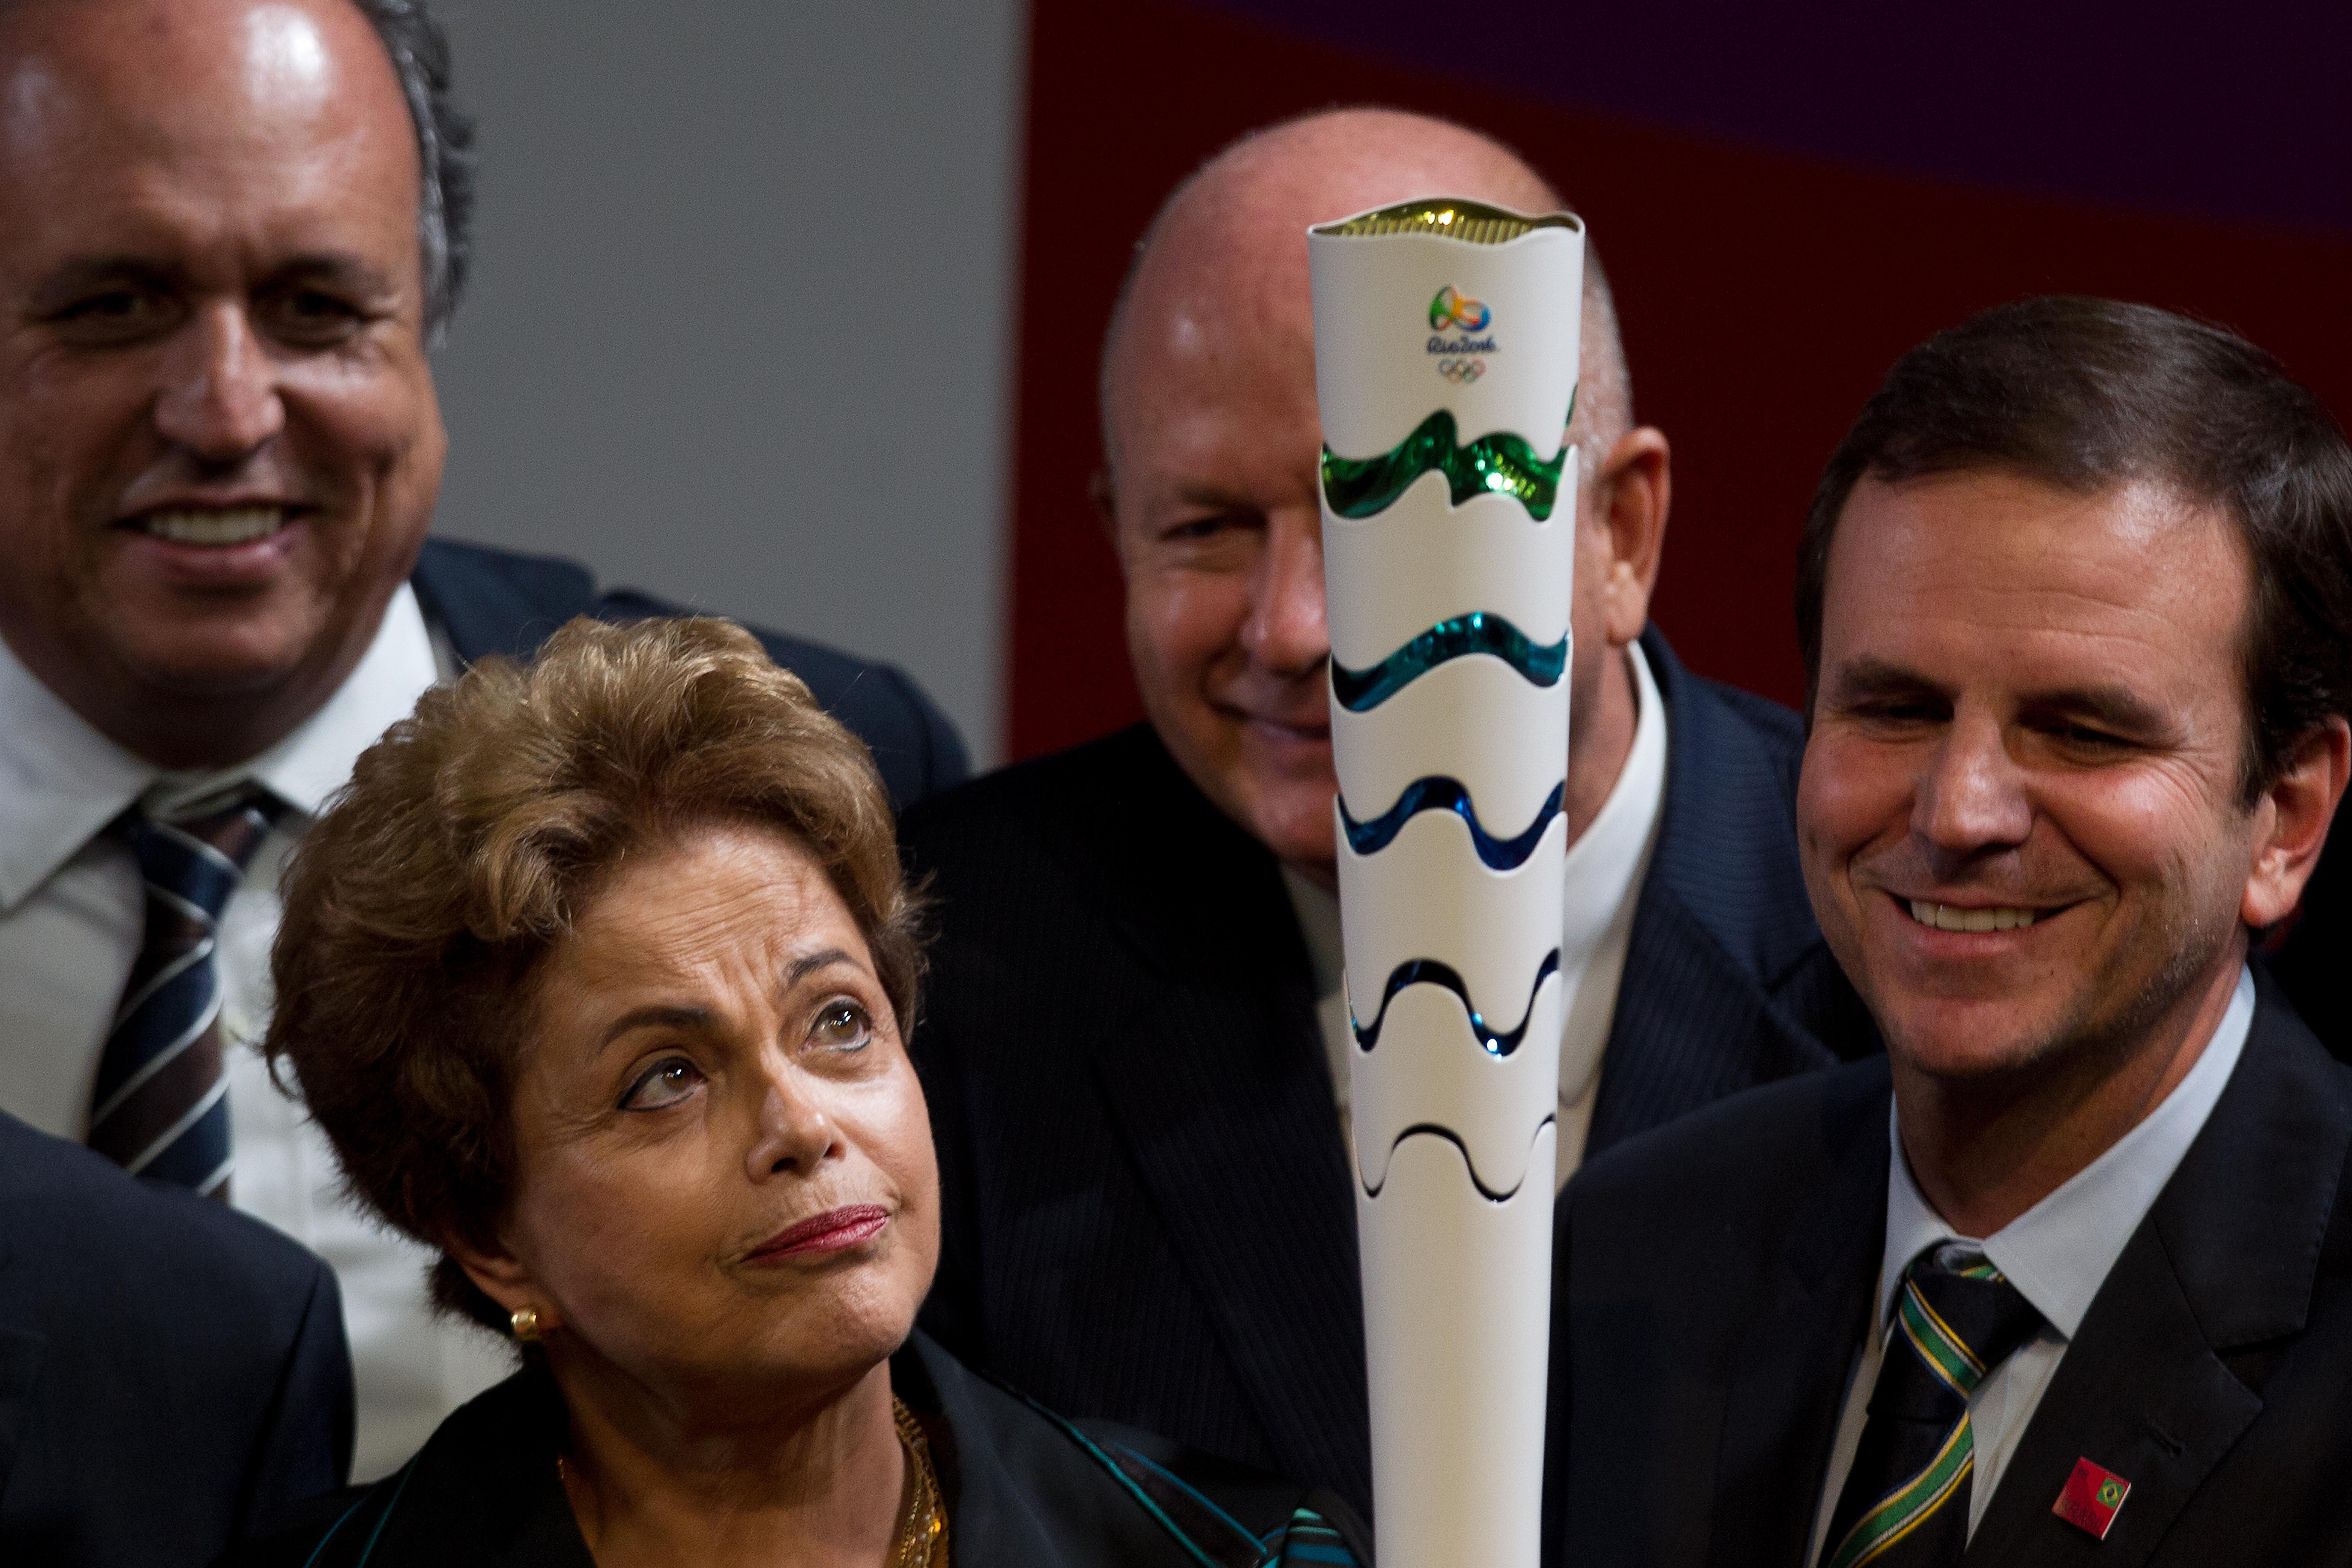 FILE -  In this July 3, 2015 photo, Brazil's President Dilma Rousseff, left, and Rio de Janeiro Mayor Eduardo Paes look at the Olympic Torch as it's presented during a ceremony ahead of the 2016 Rio Olympic Games in Brasilia, Brazil. The former head of na